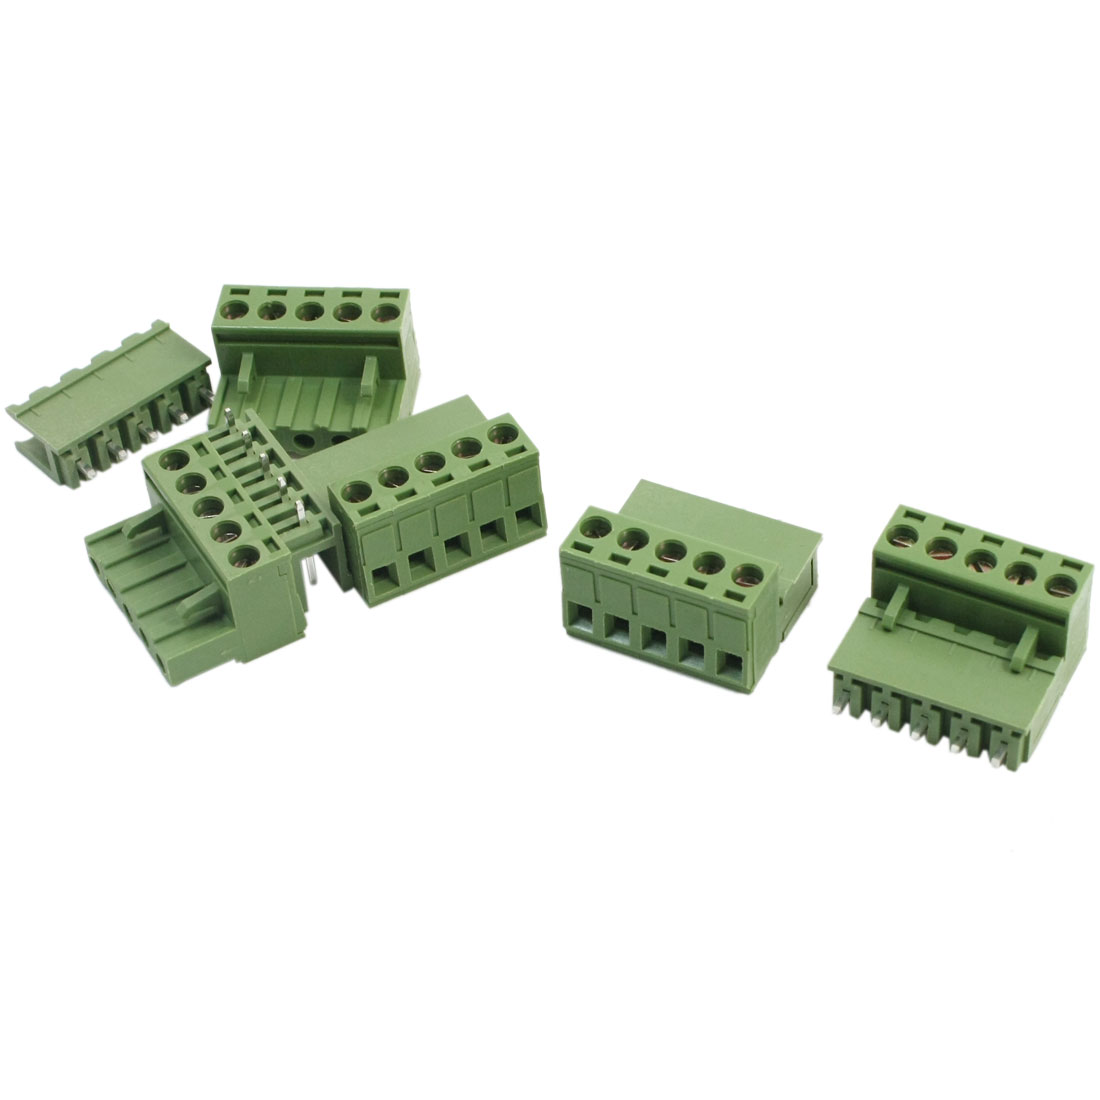 5.08mm Pitch 5Pin Pluggable in PCB Mount Green Plastic Screw Terminal Barrier Block Connector 300V 10A 5Pcs